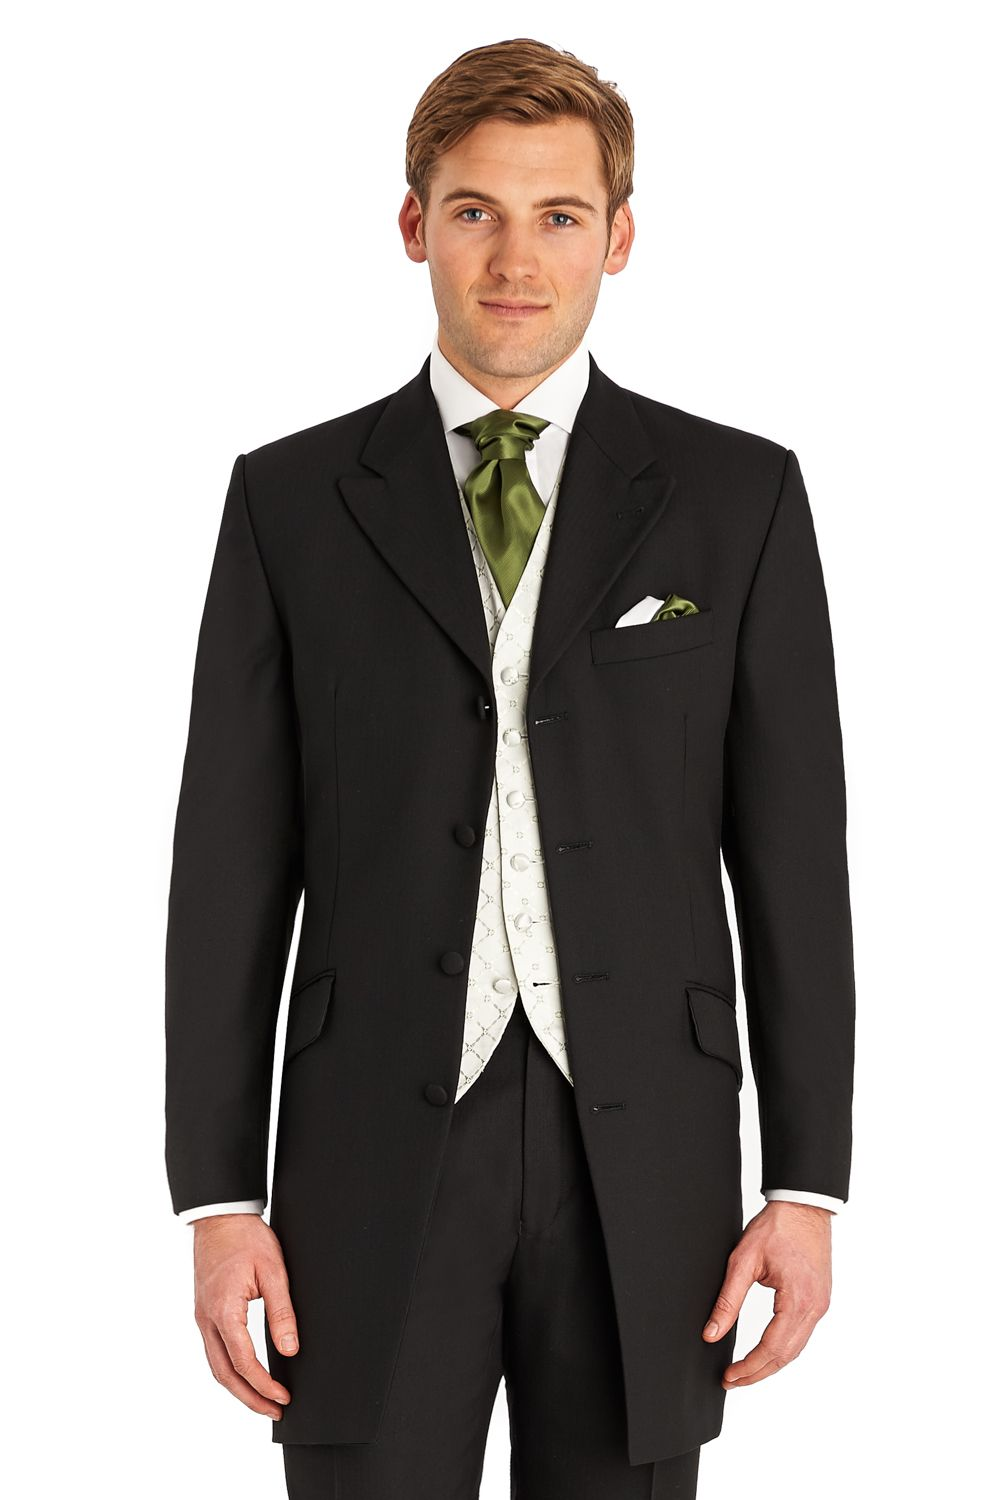 Arundel suit hire from Moss | Black & White Wedding | Pinterest ...